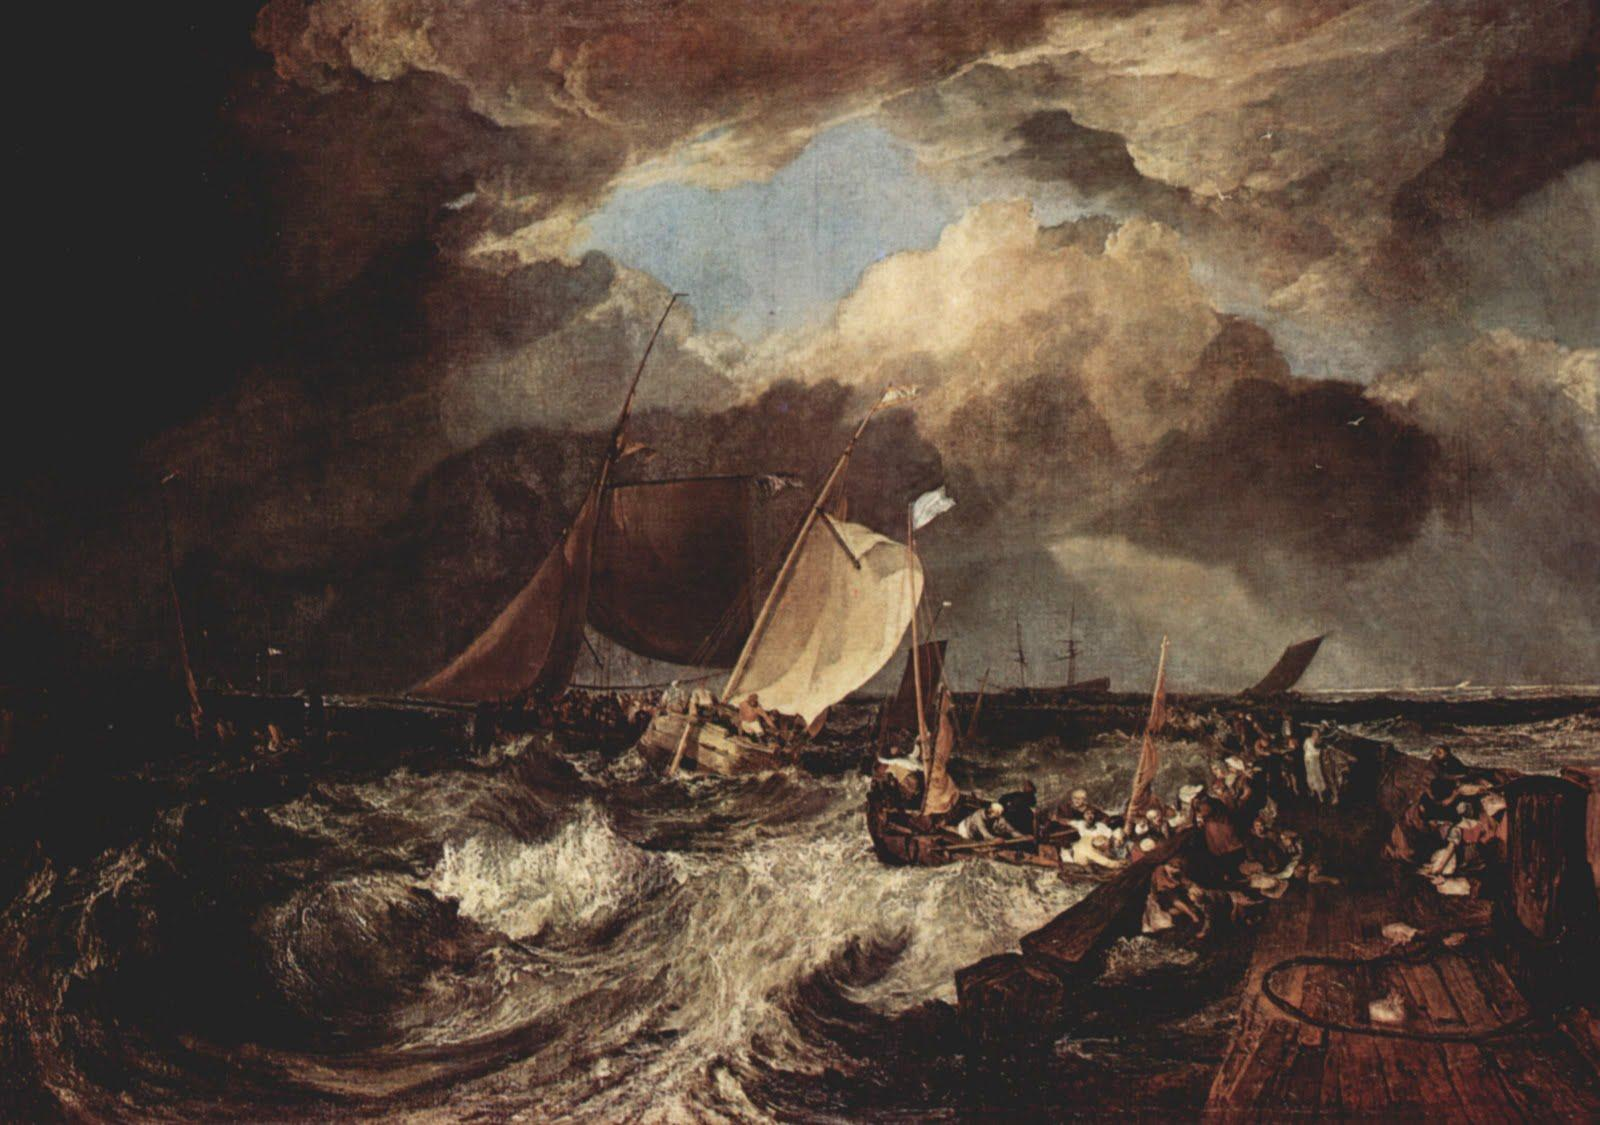 Joseph_Mallord_William_Turner_024_OBNP2009-Y09754.jpg (1600×1125)